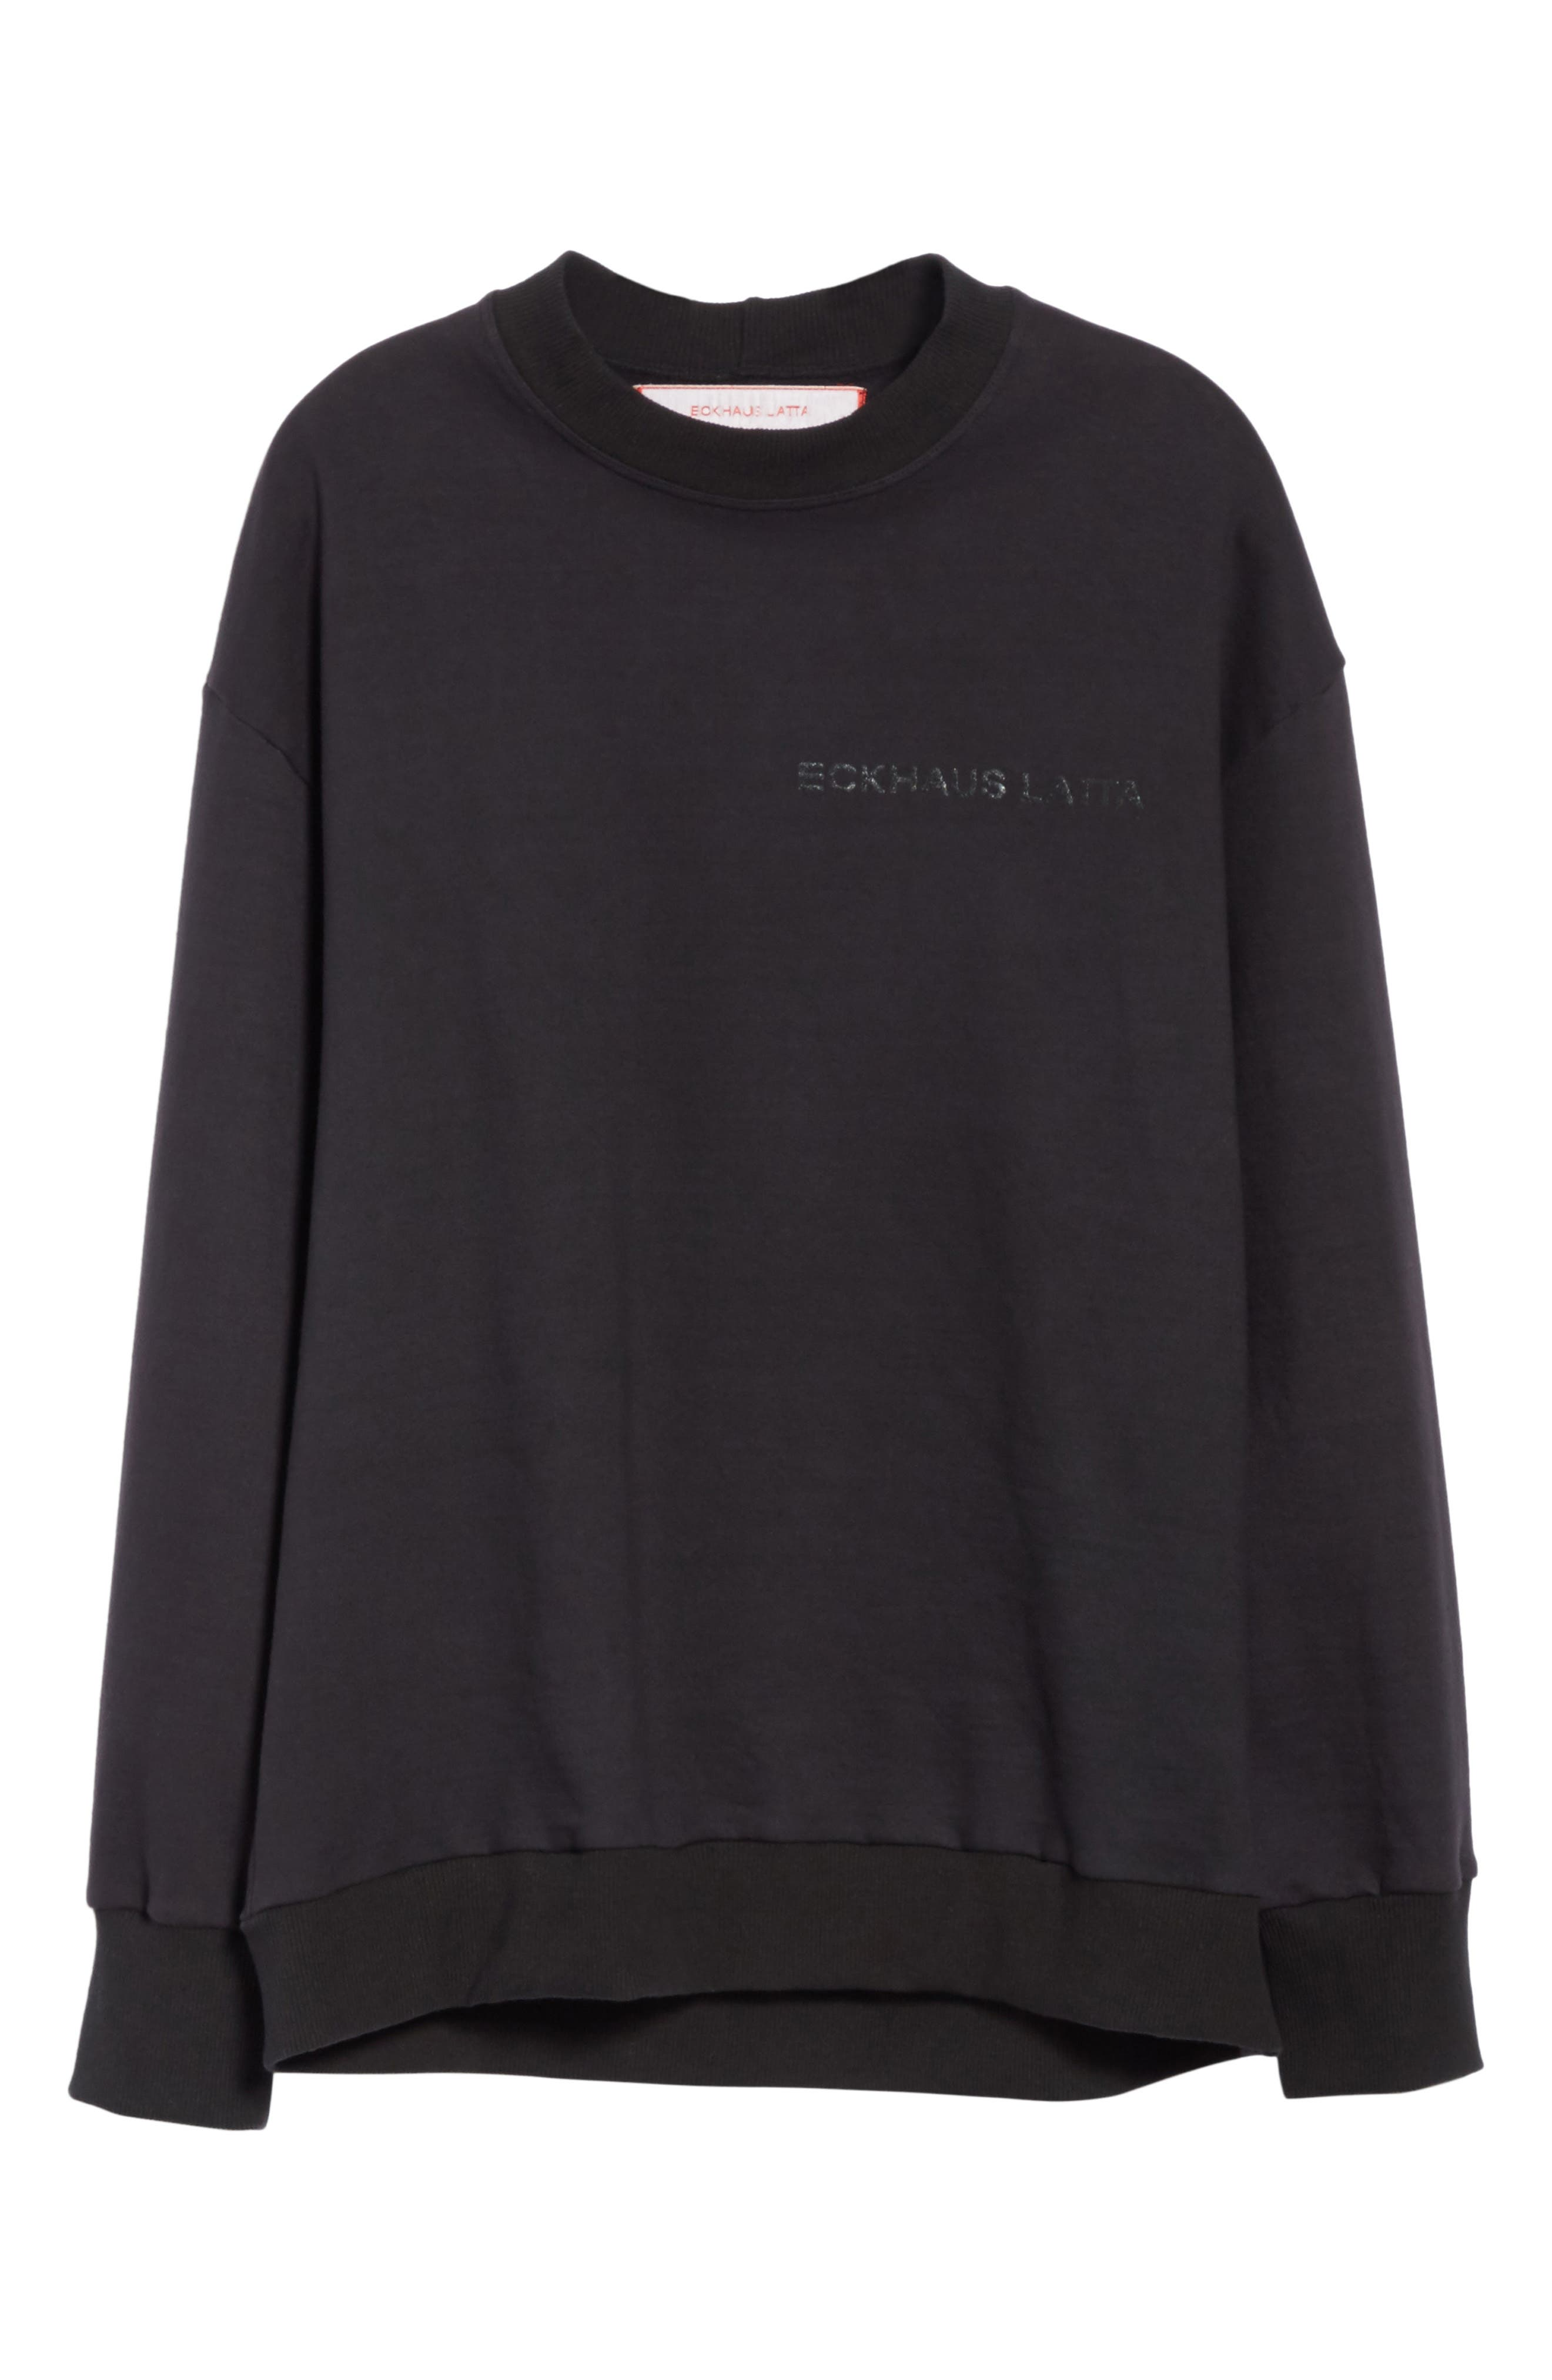 Relaxed Fit Sweatshirt,                             Alternate thumbnail 6, color,                             Black